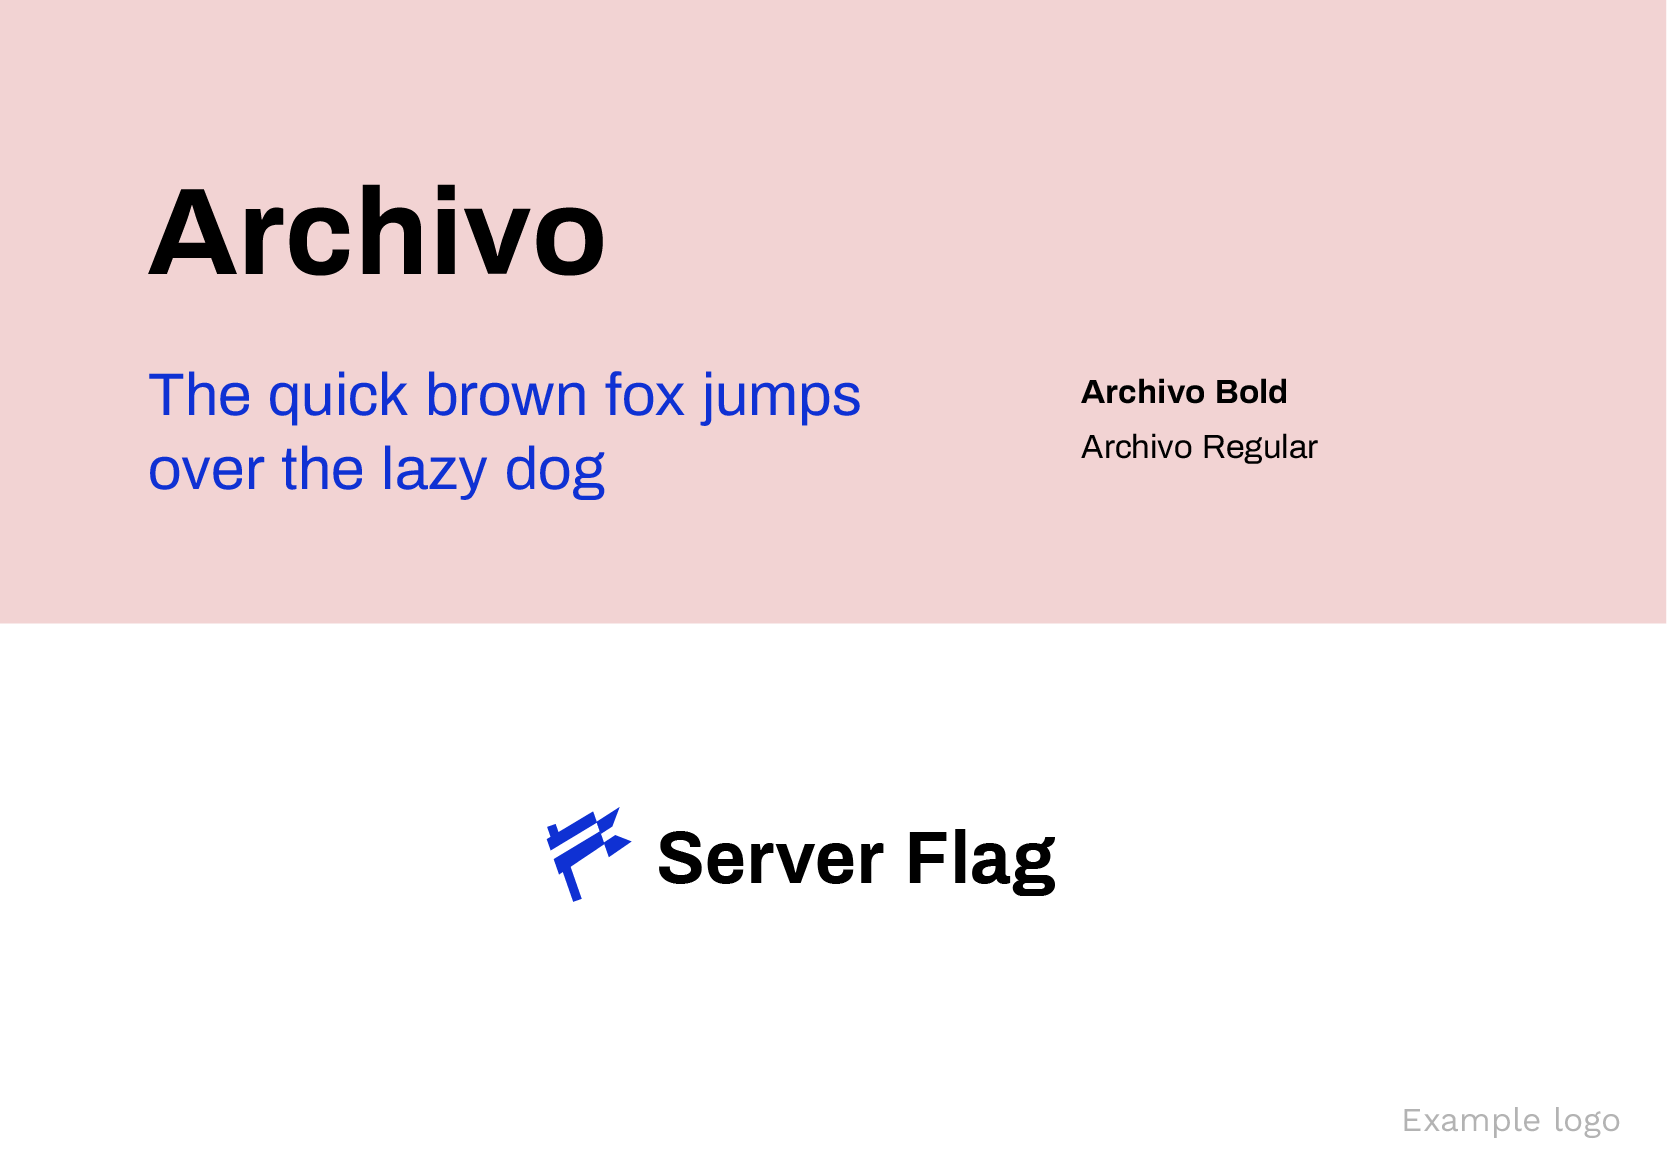 Archivo Google Fonts for logos